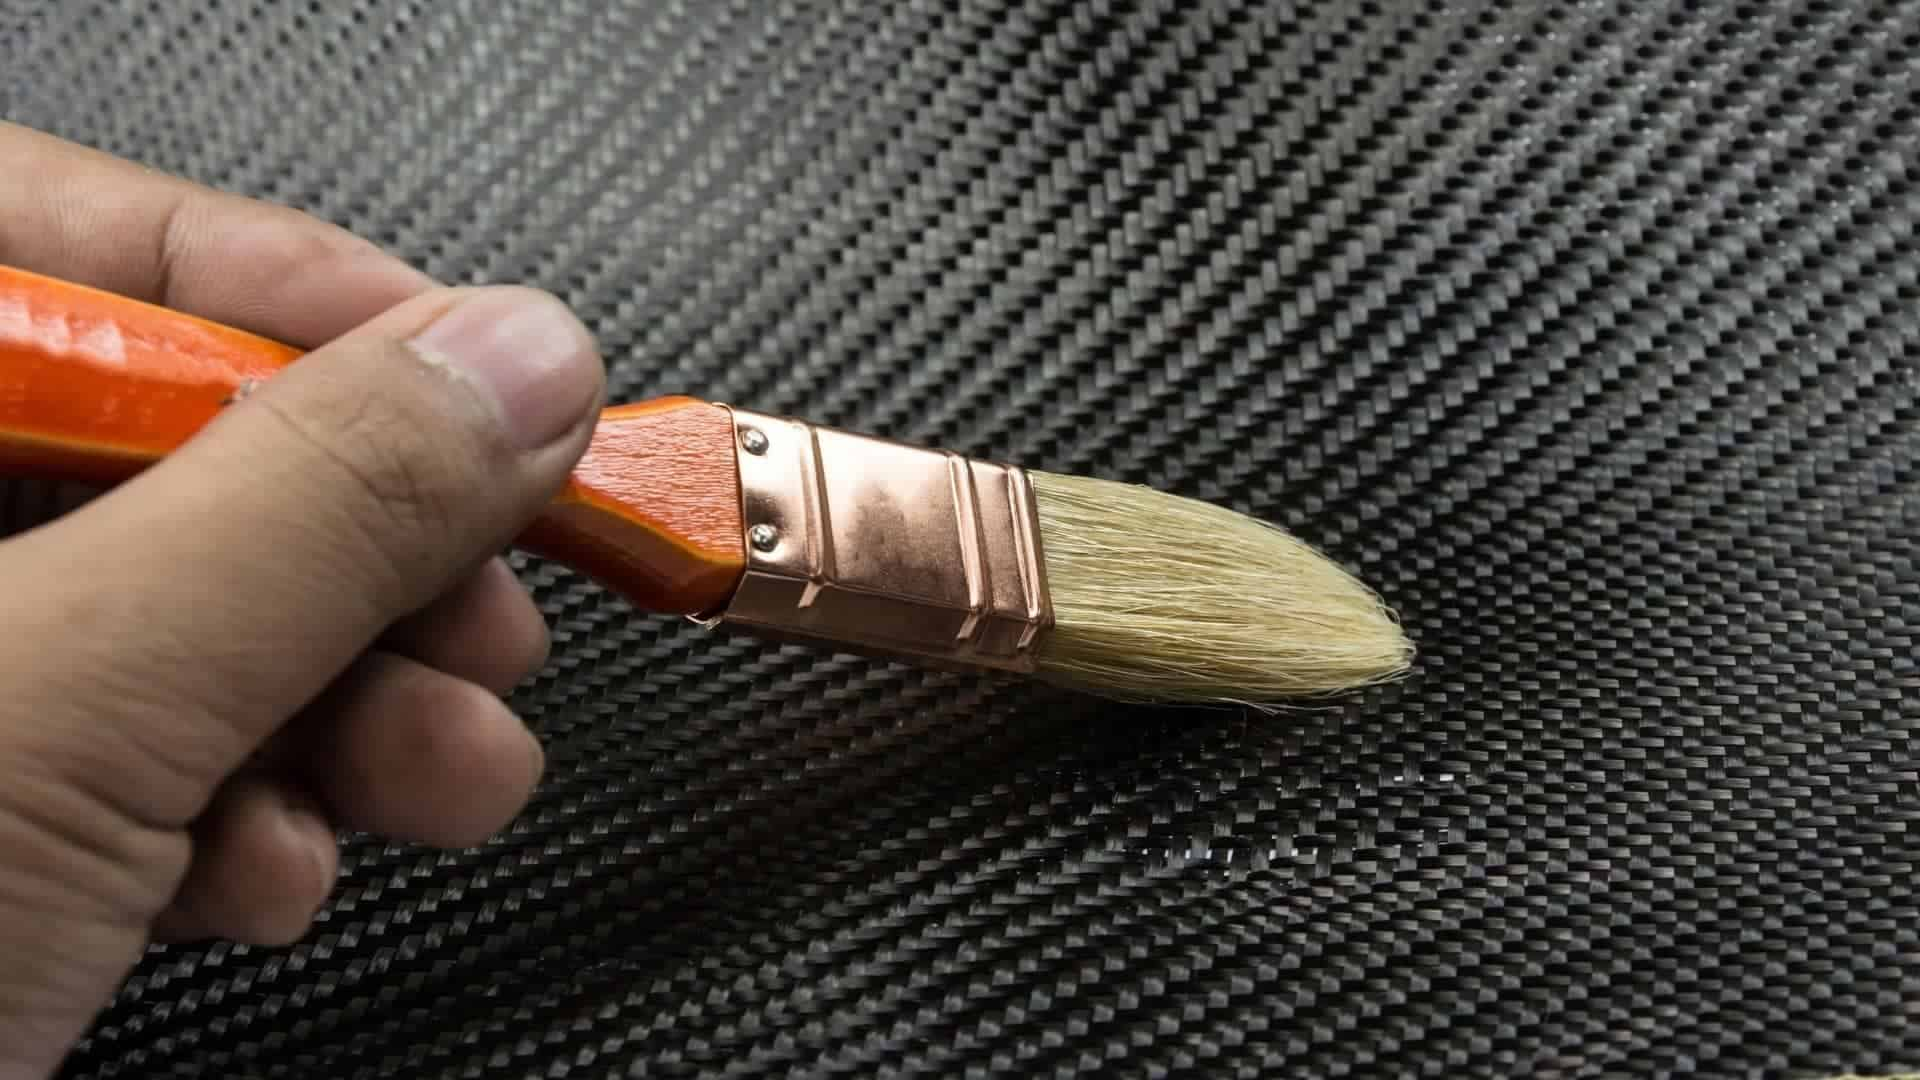 How to paint over carbon fiber